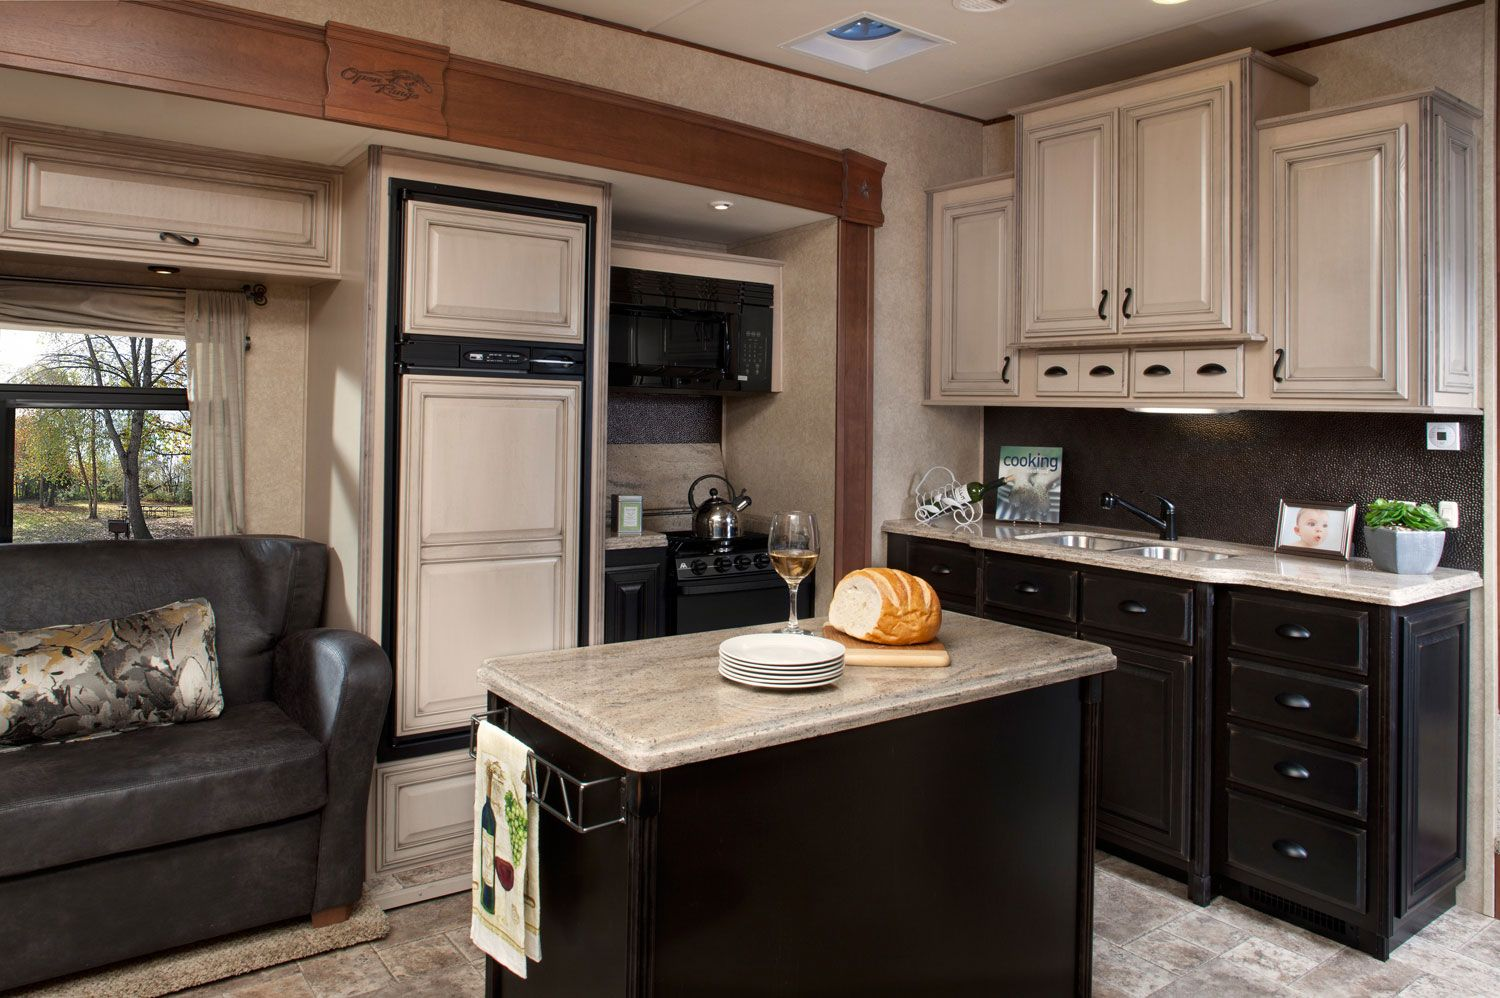 Open Range Fifth Wheel Photo Gallery By Open Range Rv